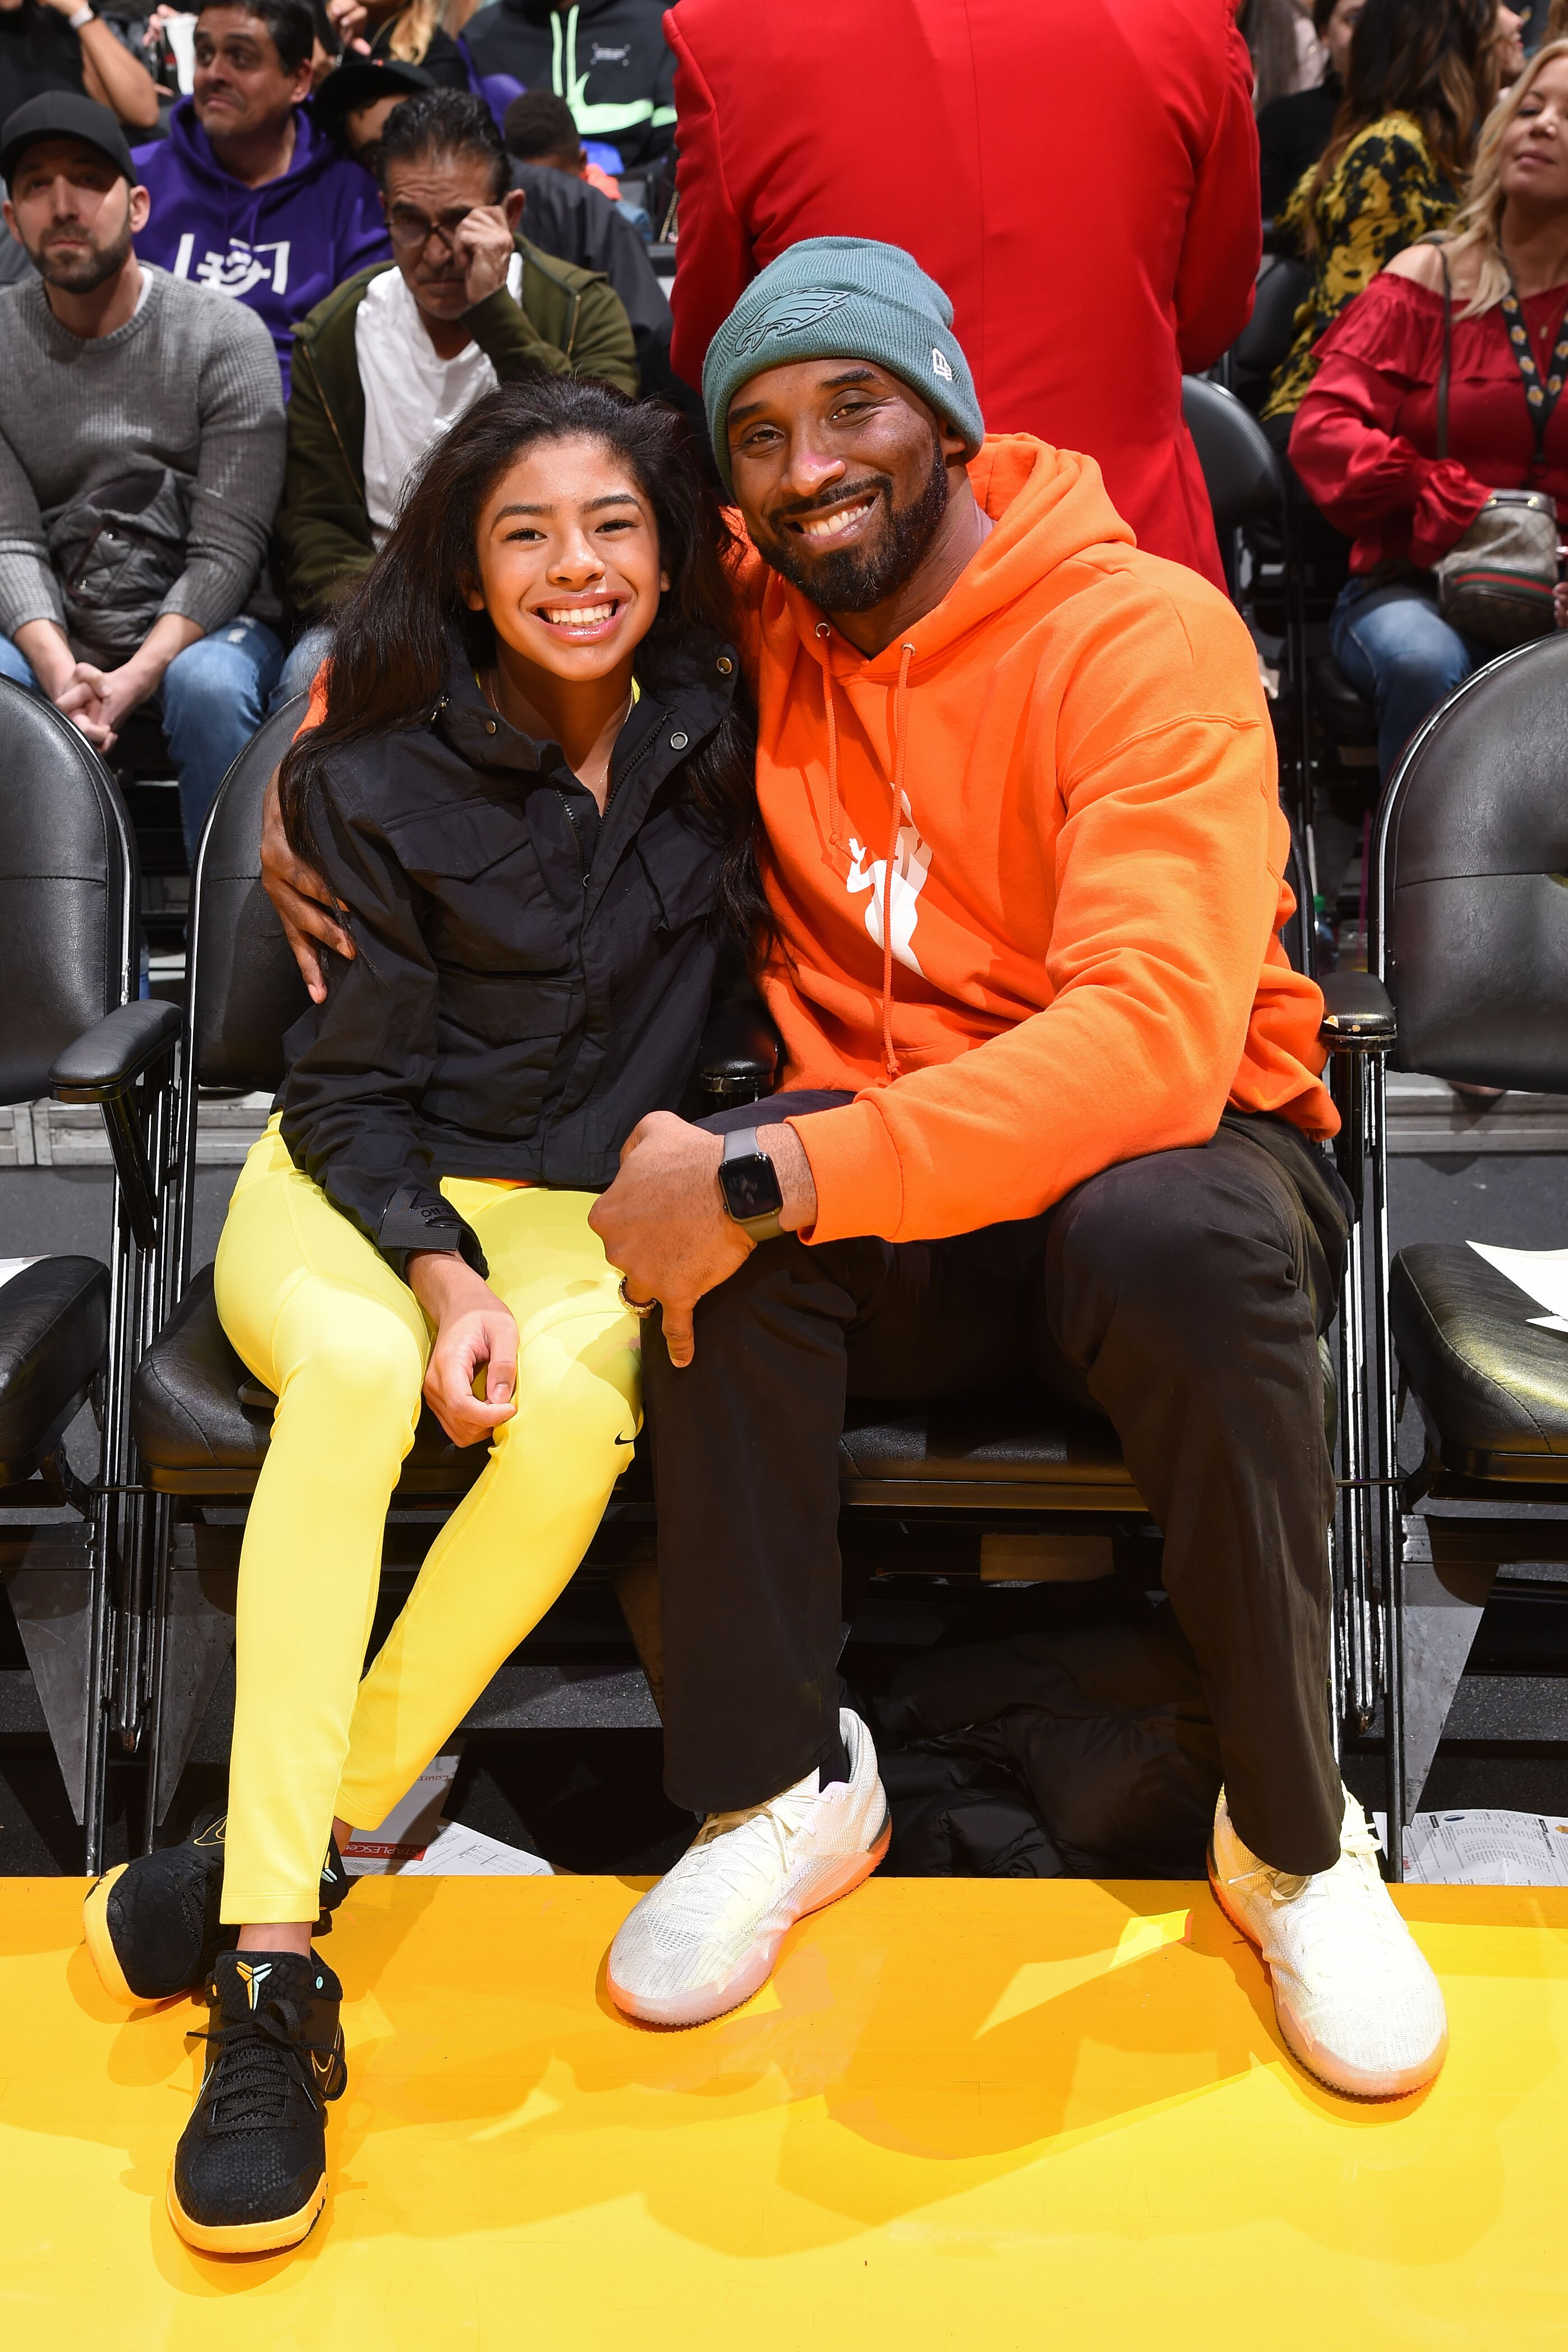 Kobe Bryant and daughter Gianna - both tragically deceased - at a WNBA basketball game | Source: Getty Images